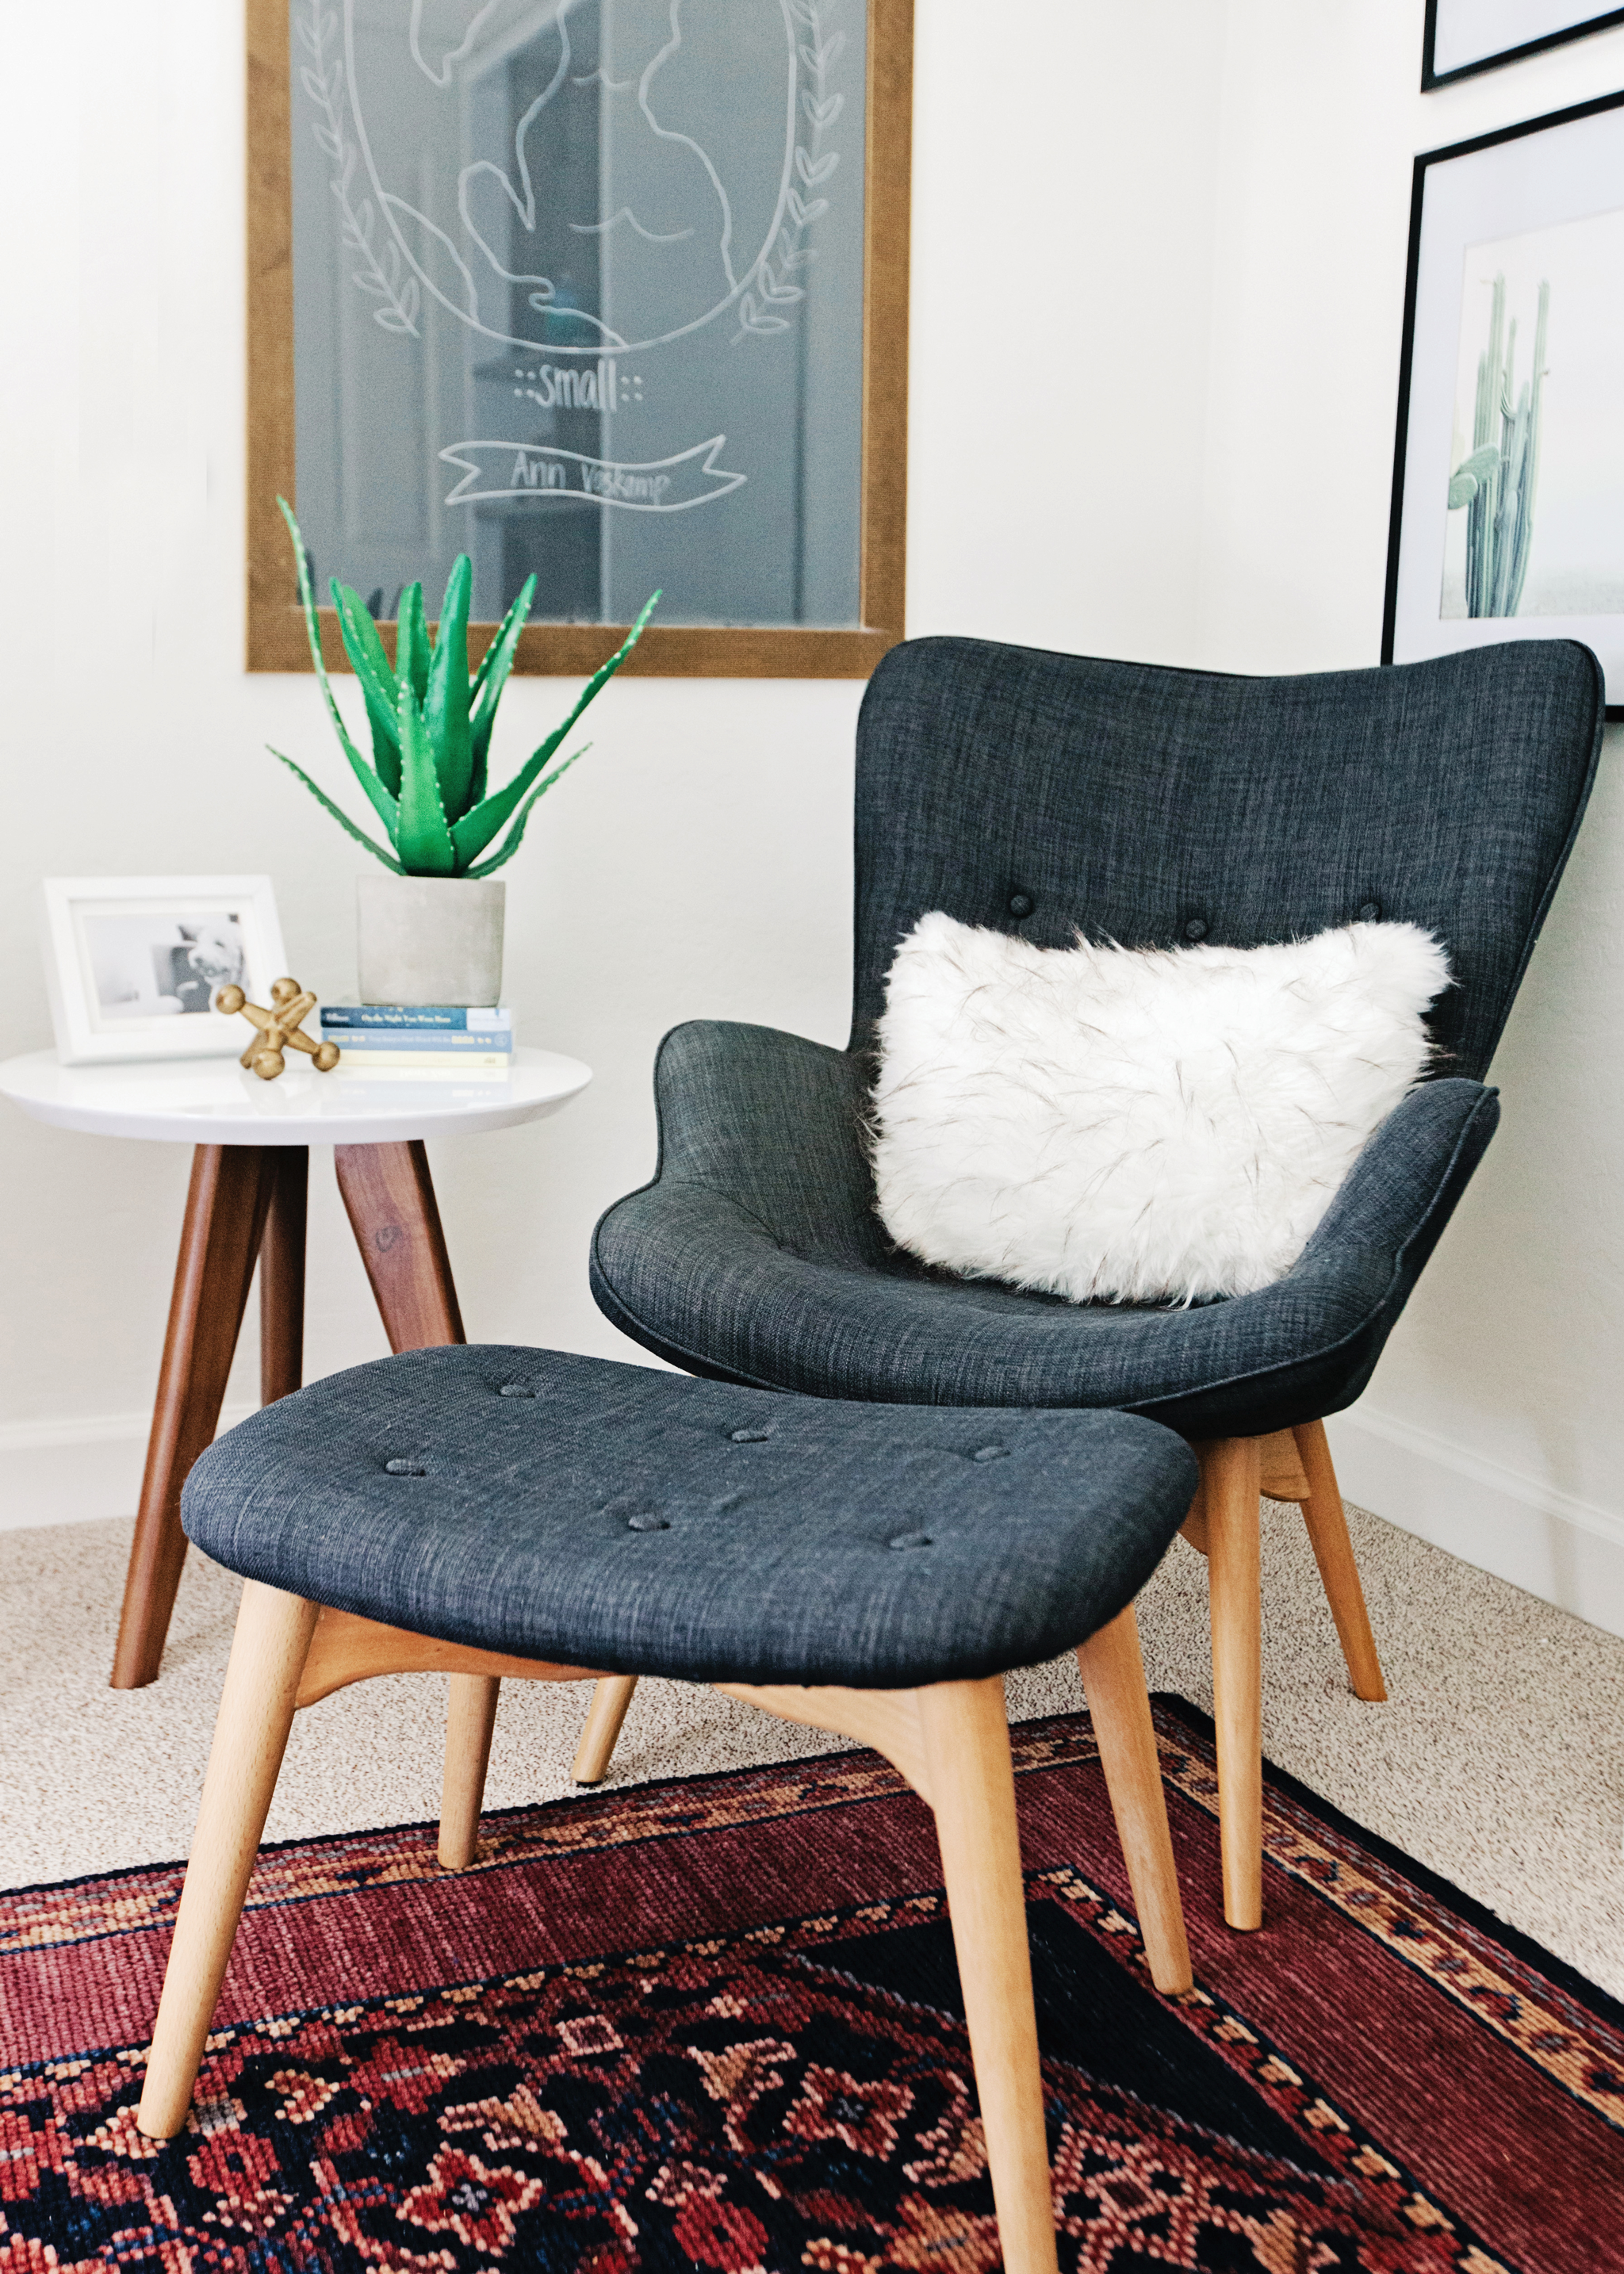 A Mid Century Modern Nursery Chair For Your Little Oneu0027s Space. Transform  This Space